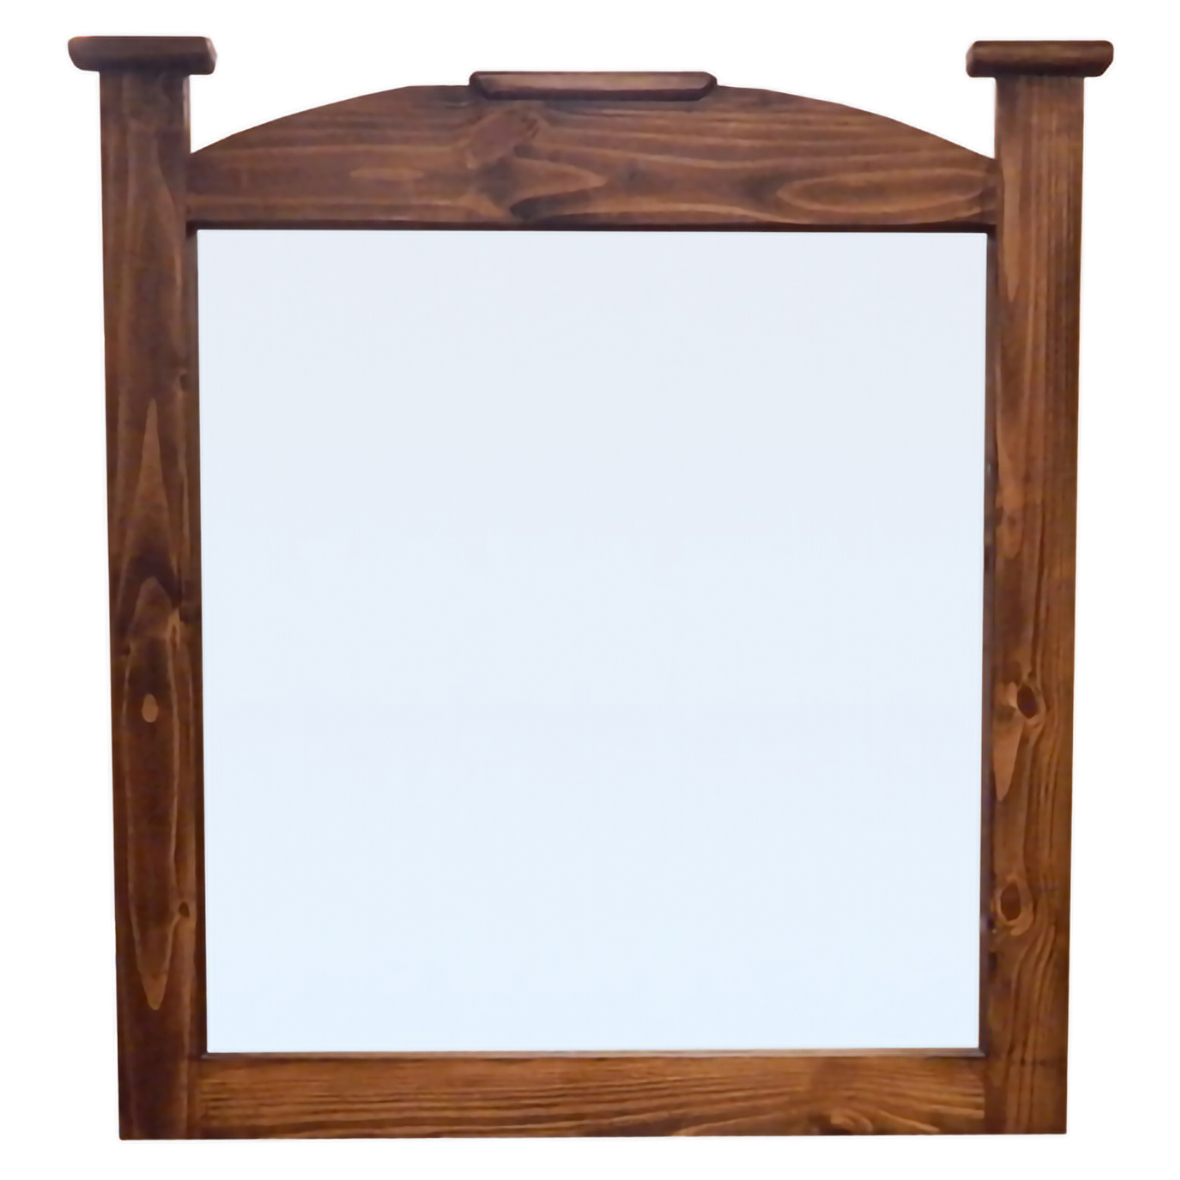 Pine Estate Mirror - Natural Dark